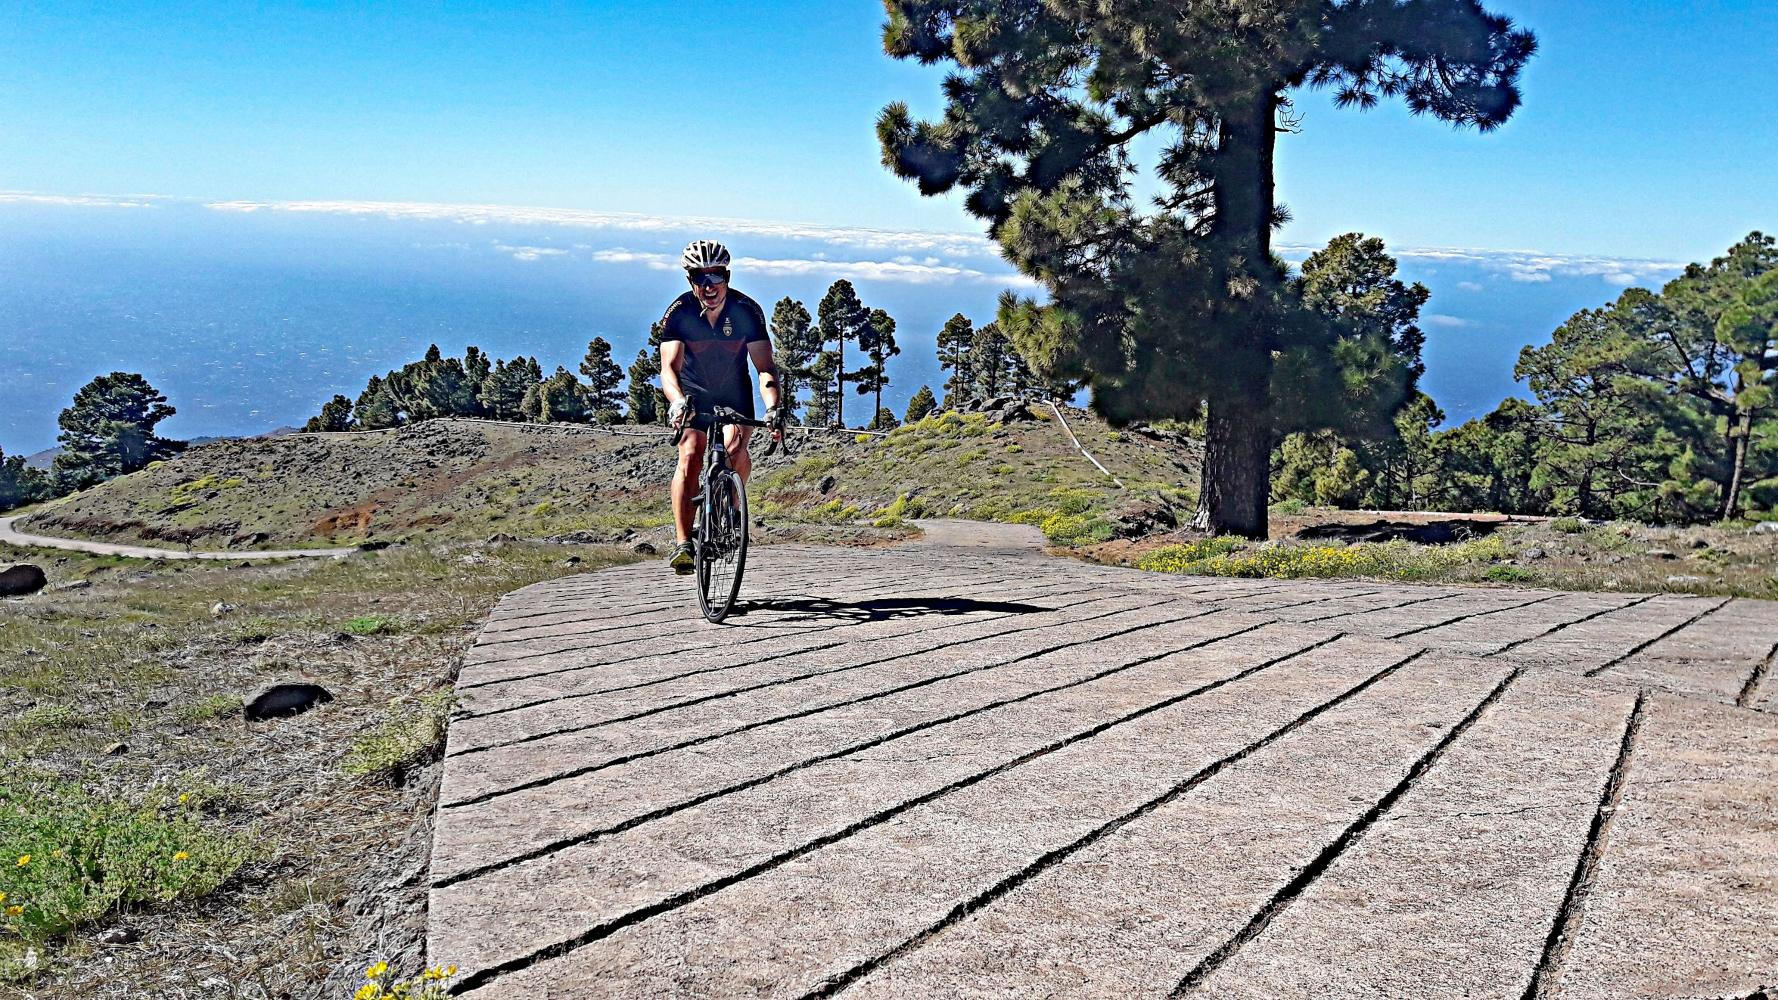 Cycling Climb - Llano de las Animas - Spain, Canarias